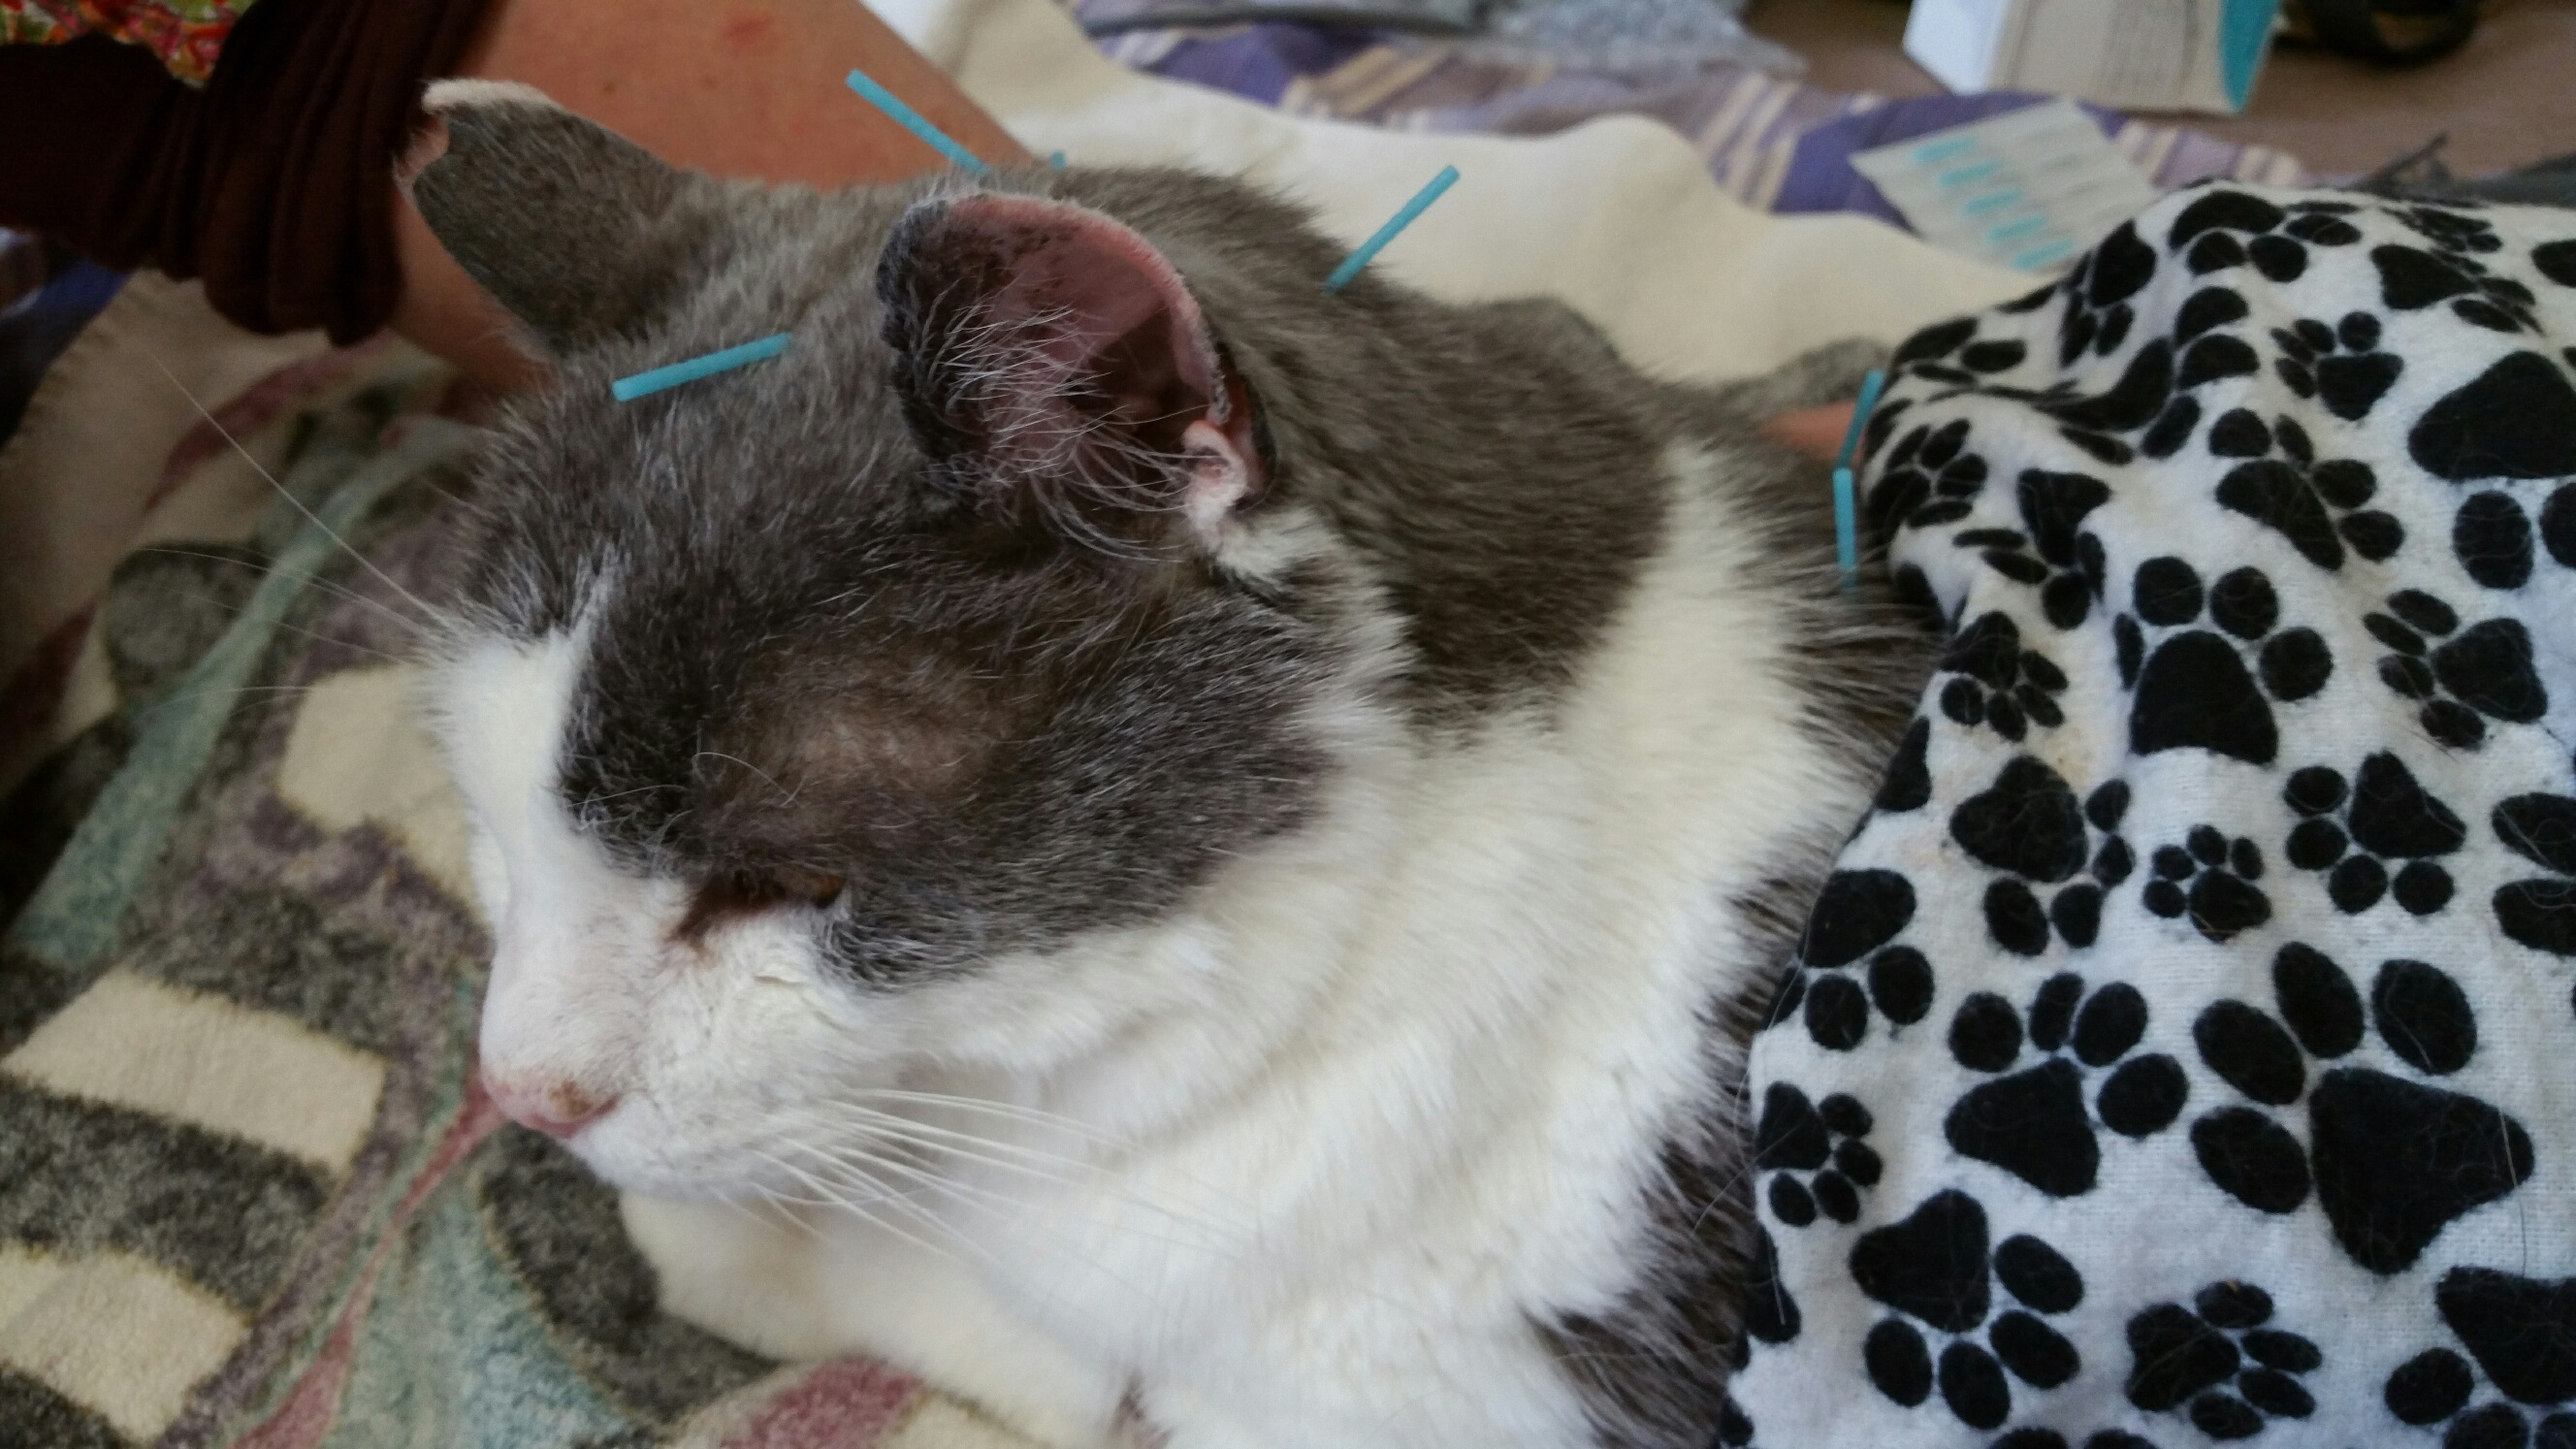 Gray Kitty gets as relaxed as can be during his treatments